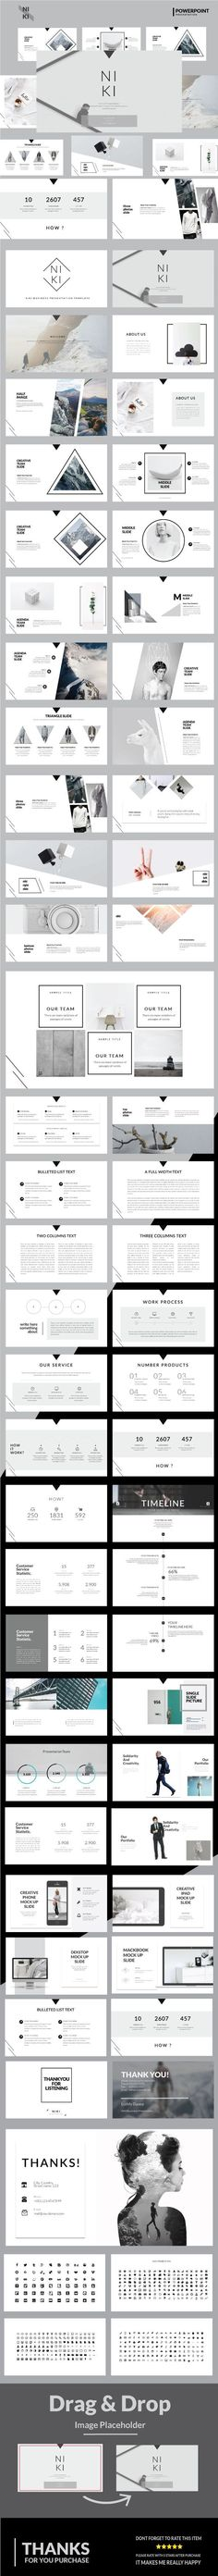 Niki Multipurpose Powerpoint Template - #Business #PowerPoint #Templates Download here: graphicriver.net/... ...repinned für Gewinner! - jetzt gratis Erfolgsratgeber sichern www.ratsucher.de